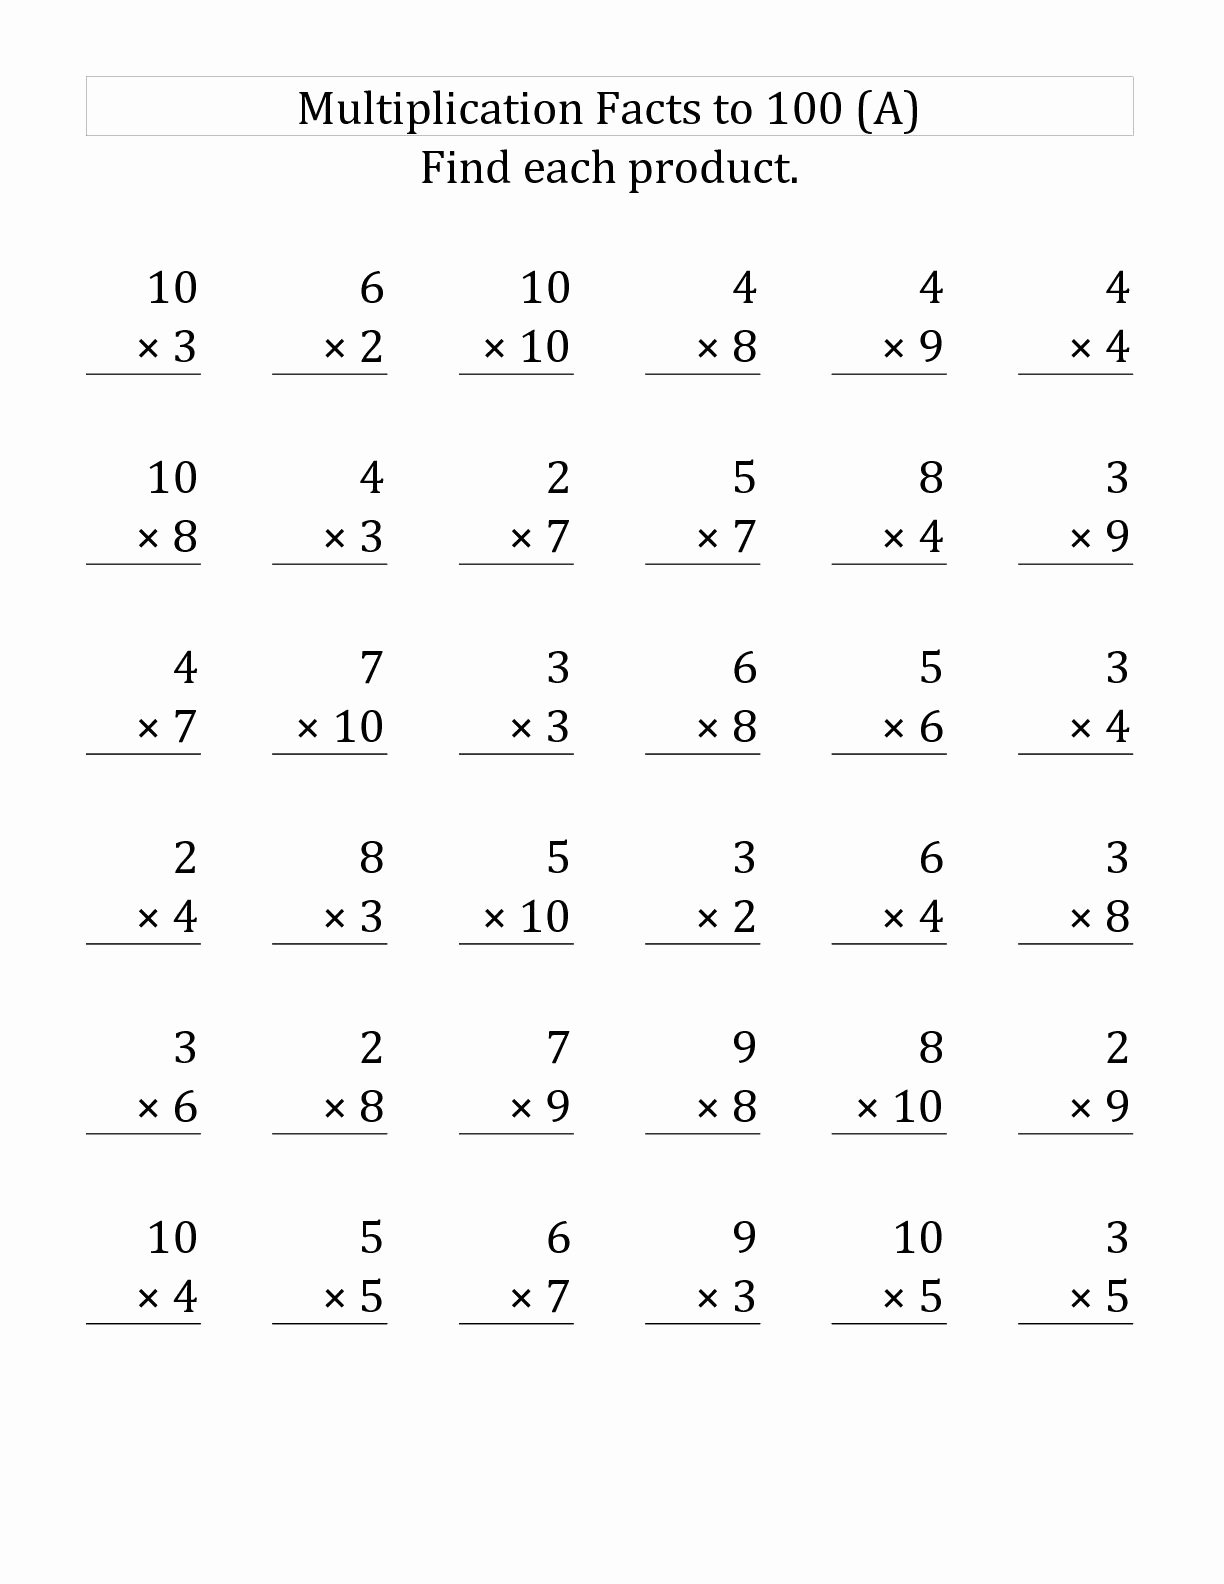 Math Fact Multiplication Worksheets Awesome Math Worksheet De Ad1da8d7a73ba3d2 Math